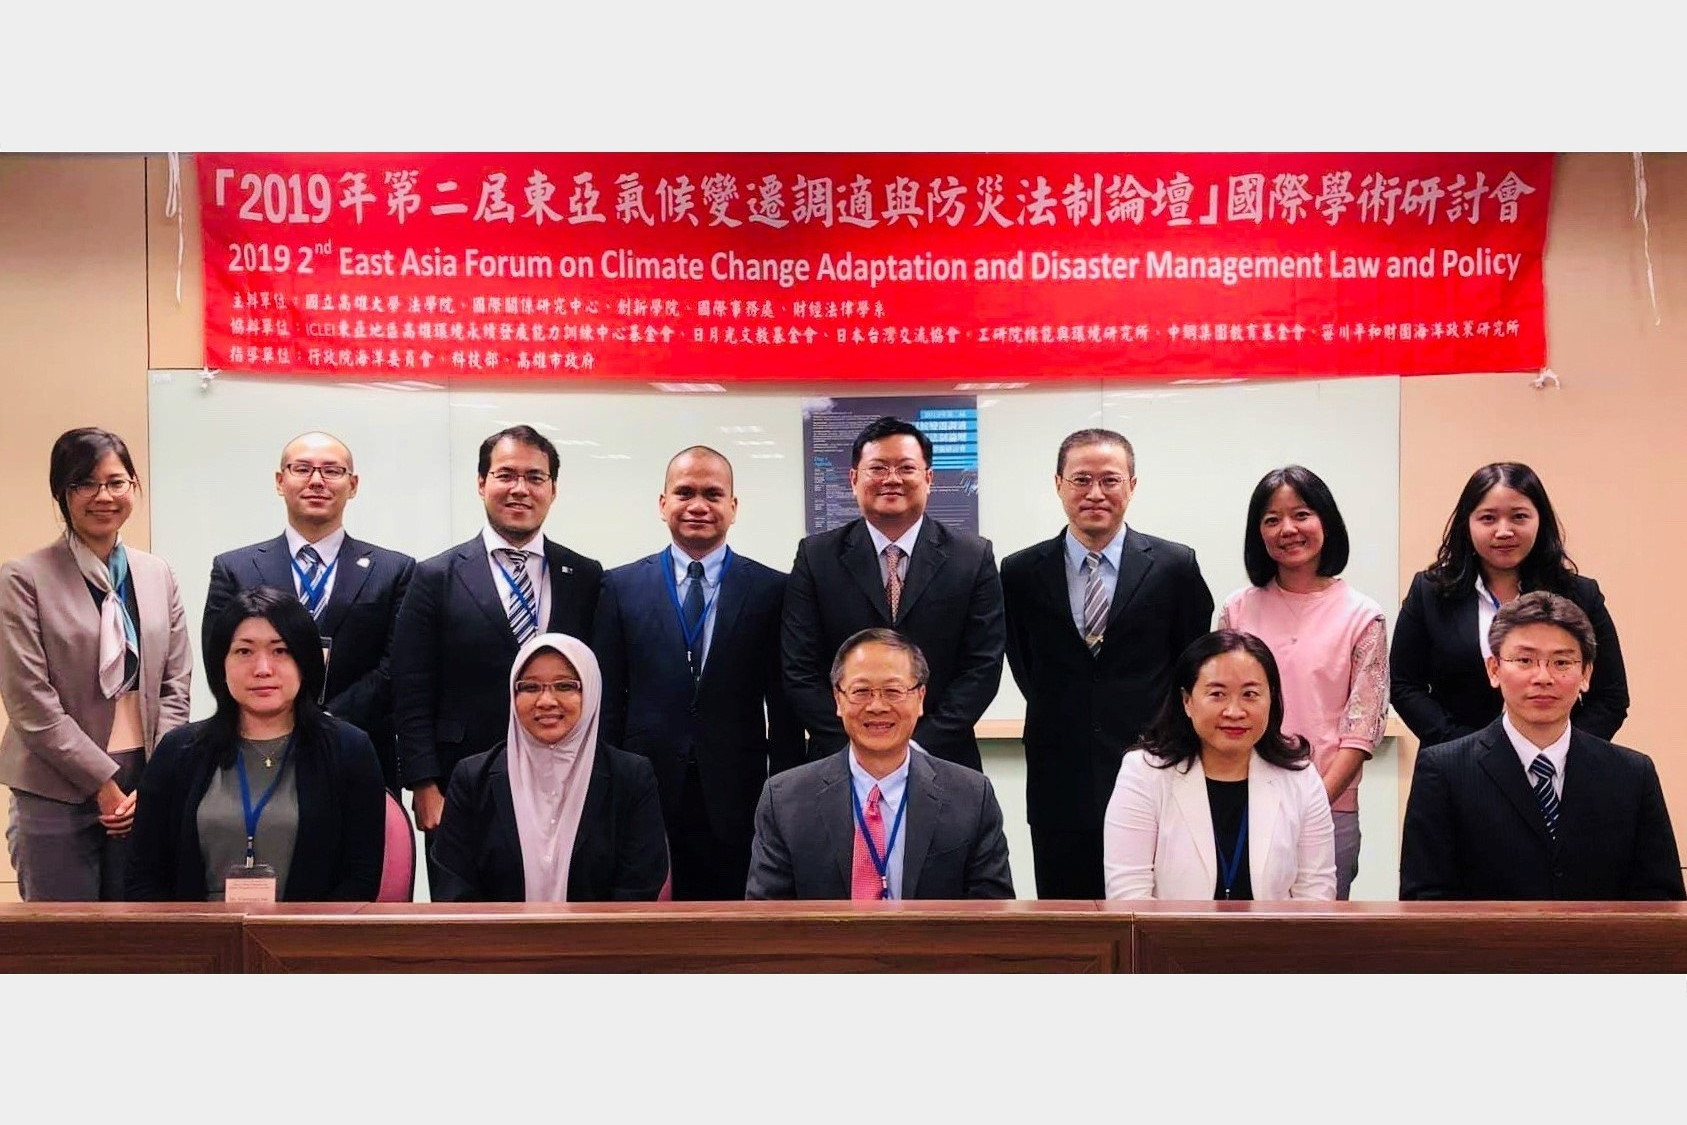 [Event Report] The 2019 2nd East Asia Forum on Climate Change Adaptation and Disaster Management Law and Policy